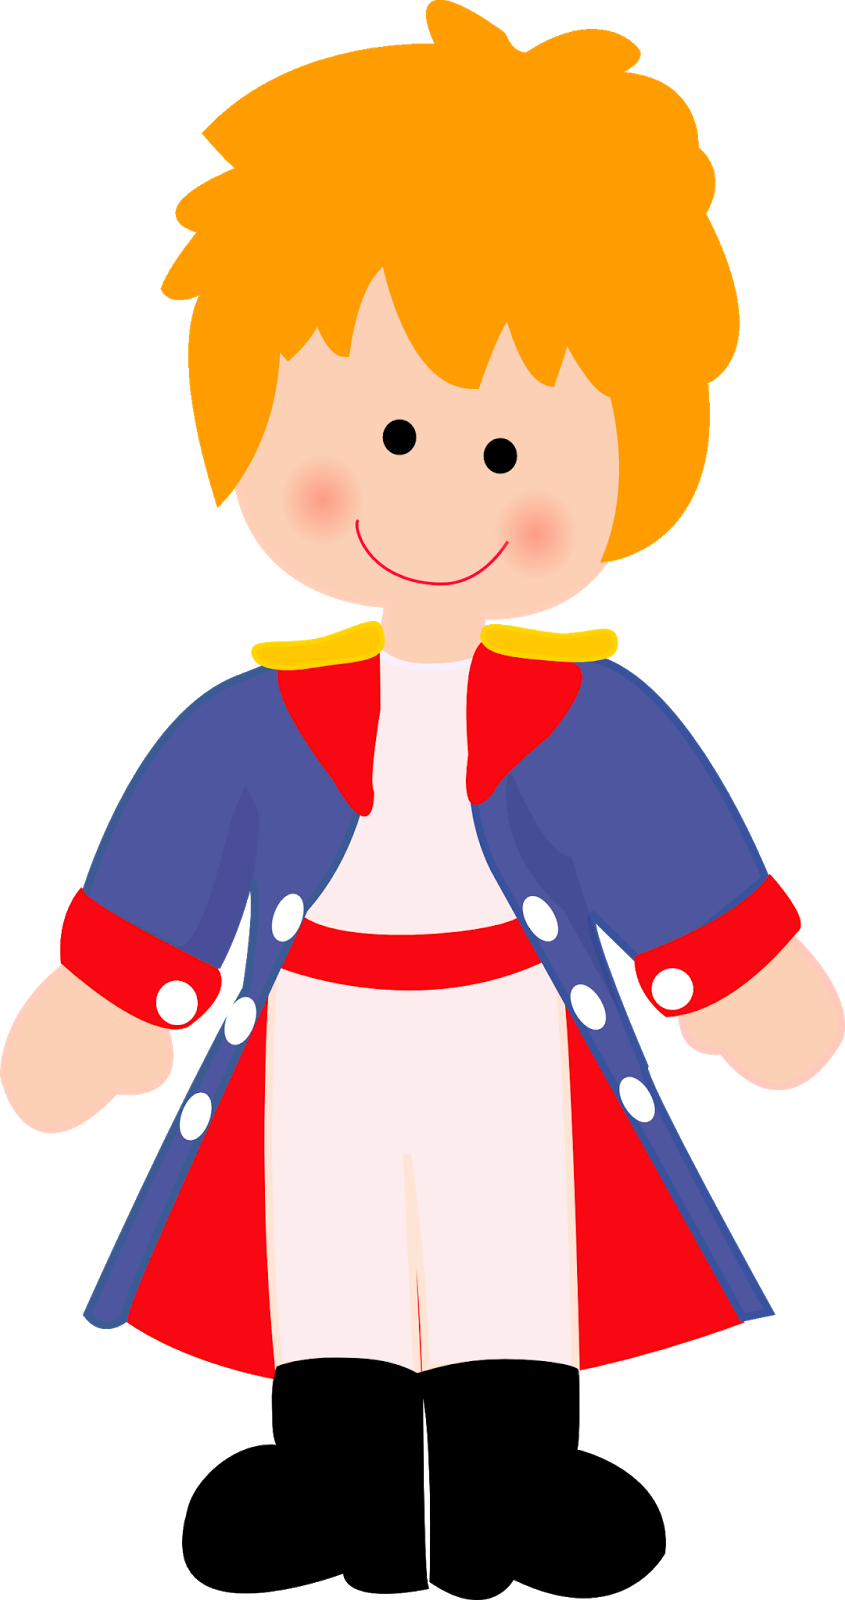 Little prince crown clipart png royalty free stock Montando a minha festa Imagens: Pequeno Príncipe | The Little Prince ... png royalty free stock